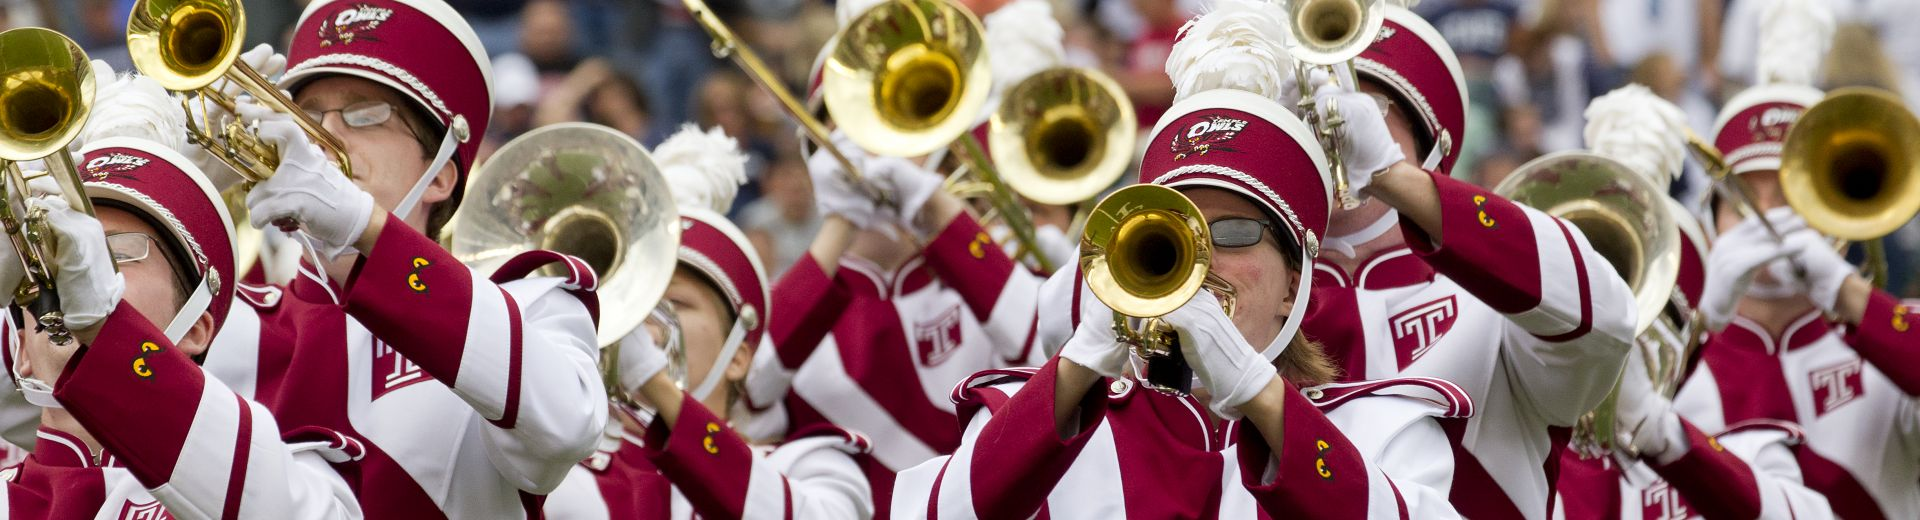 Marching band members playing trombone, wearing cherry and white uniforms